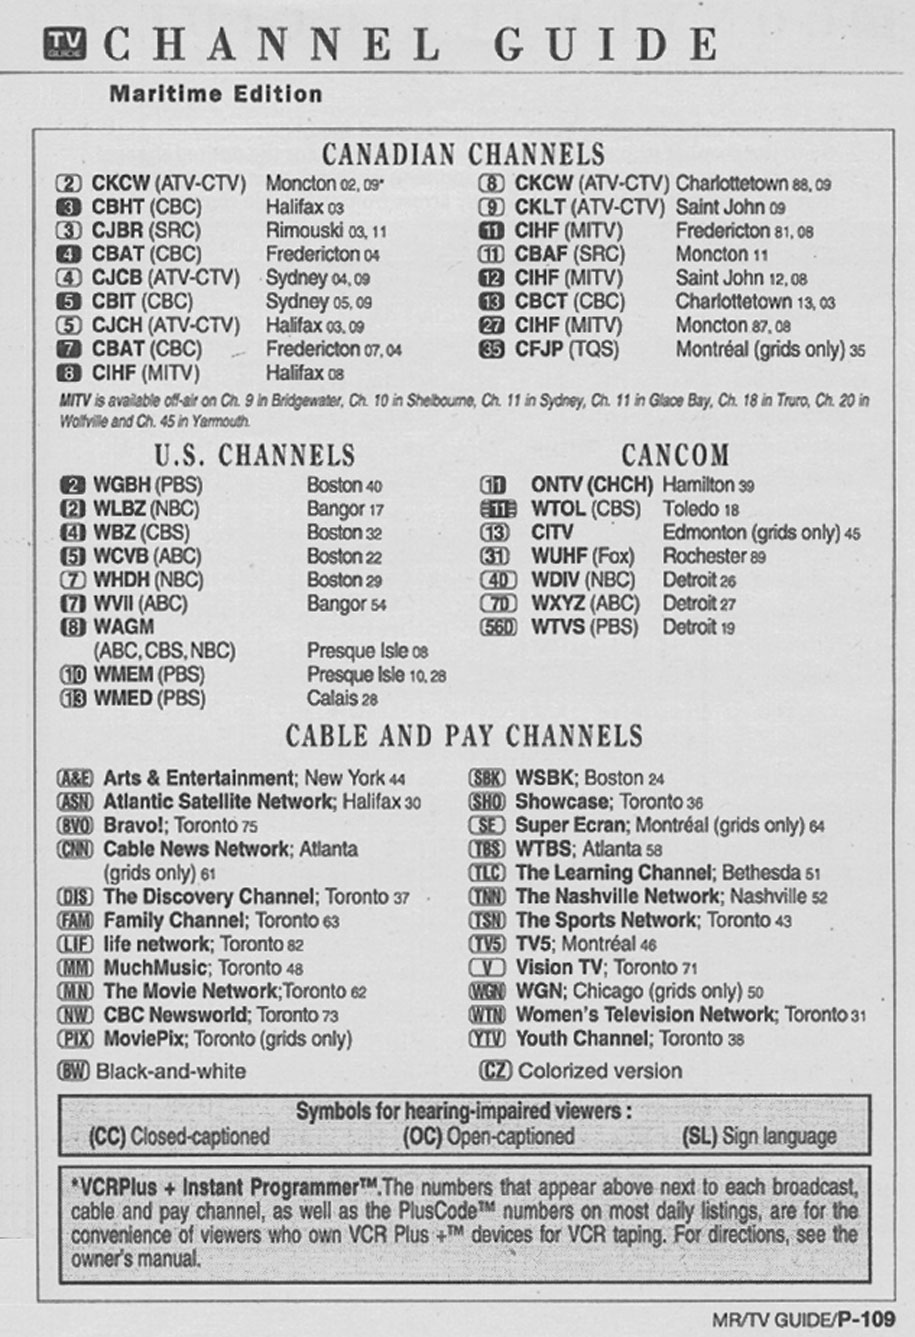 TV Guide July 19 1997 Maritime Edition Channel Guide